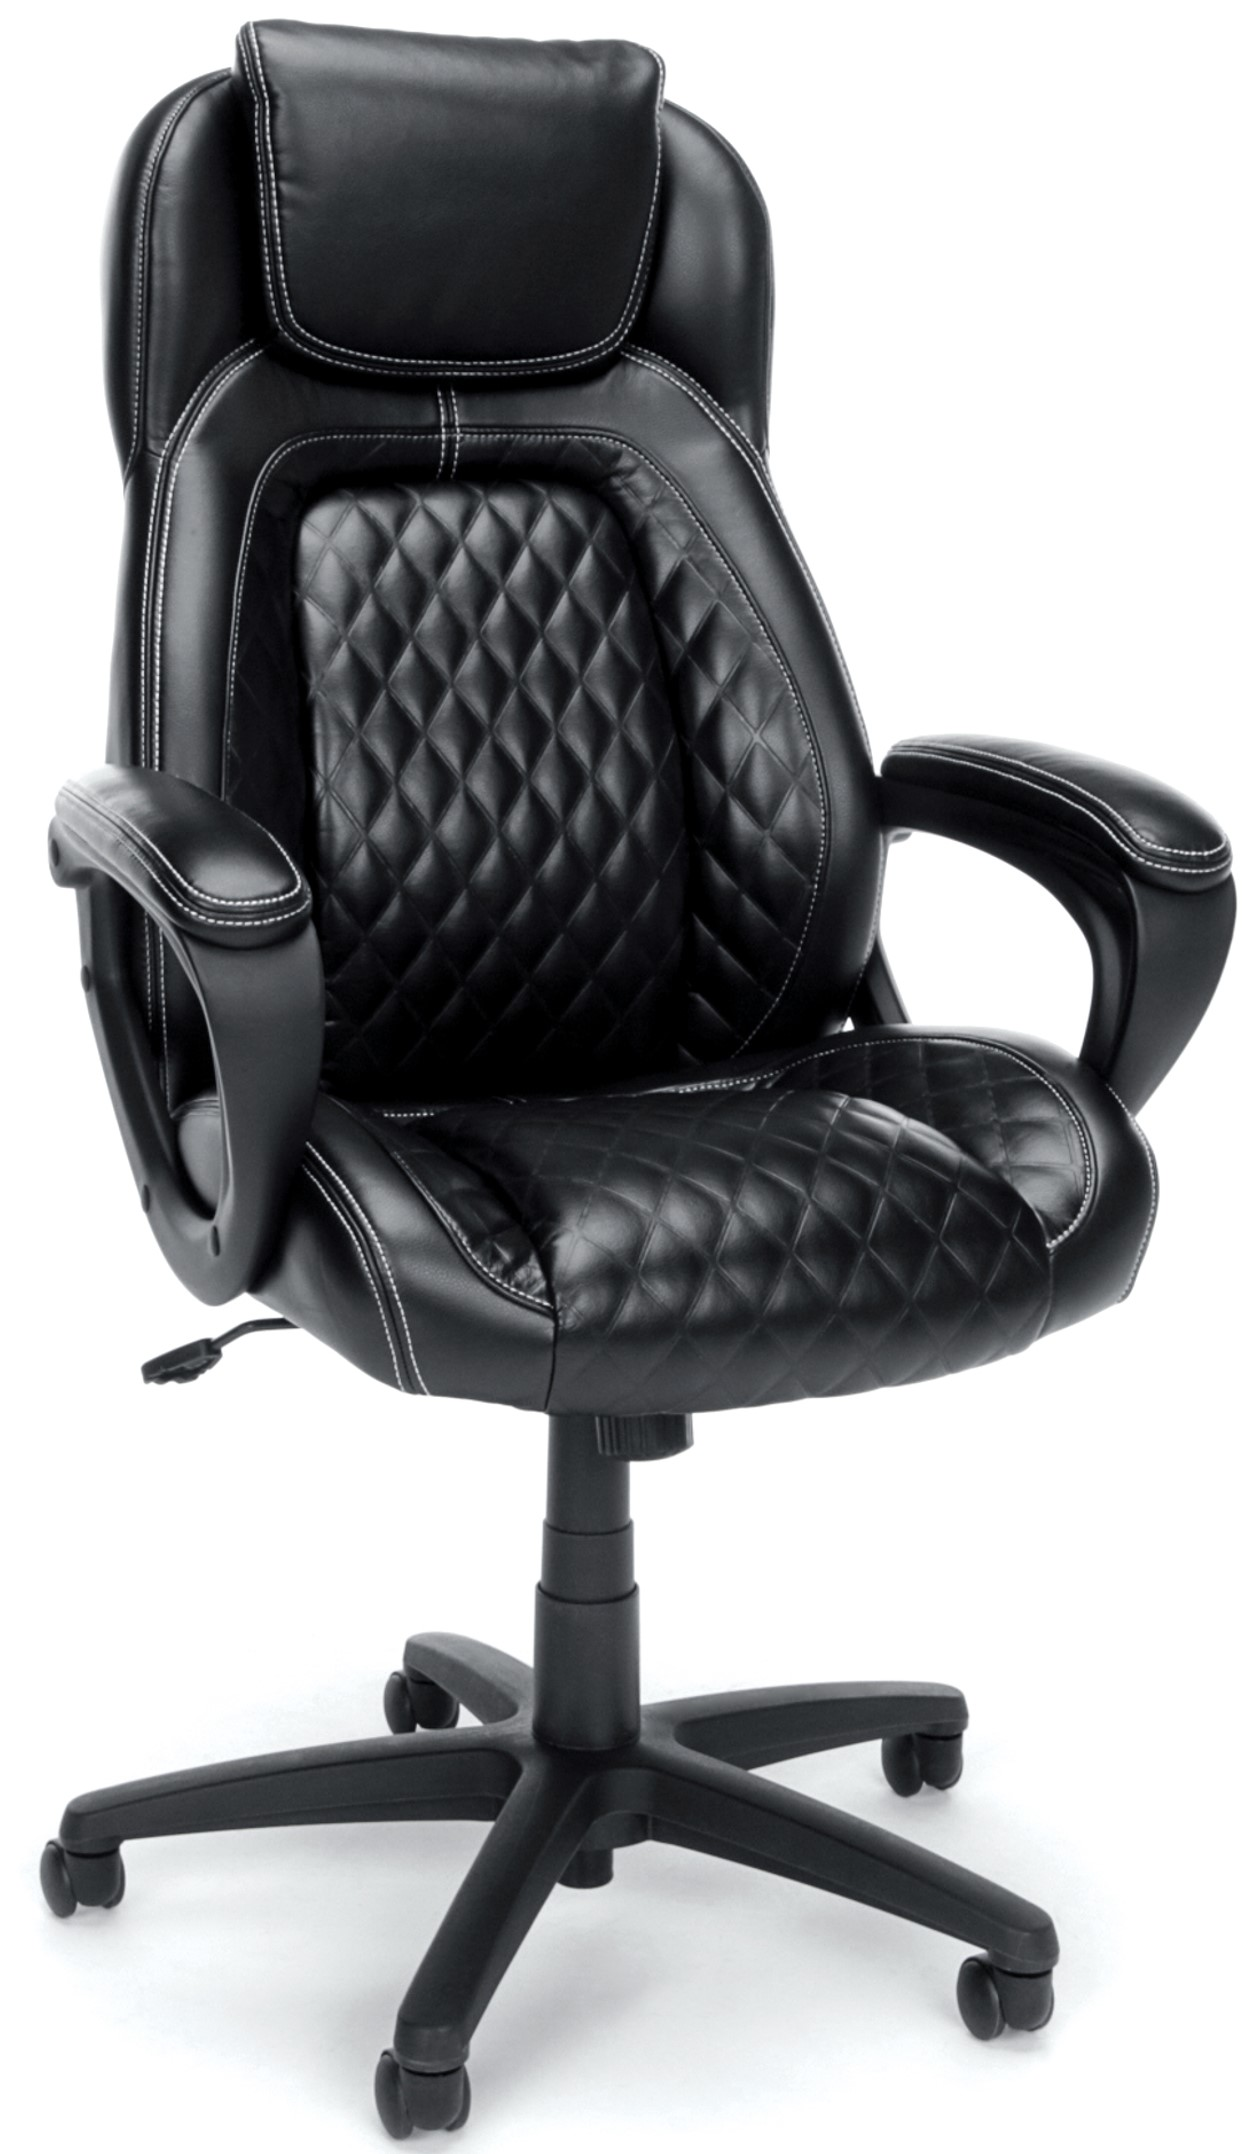 Essentials Racing Style SofThread High Back Office Chair Black